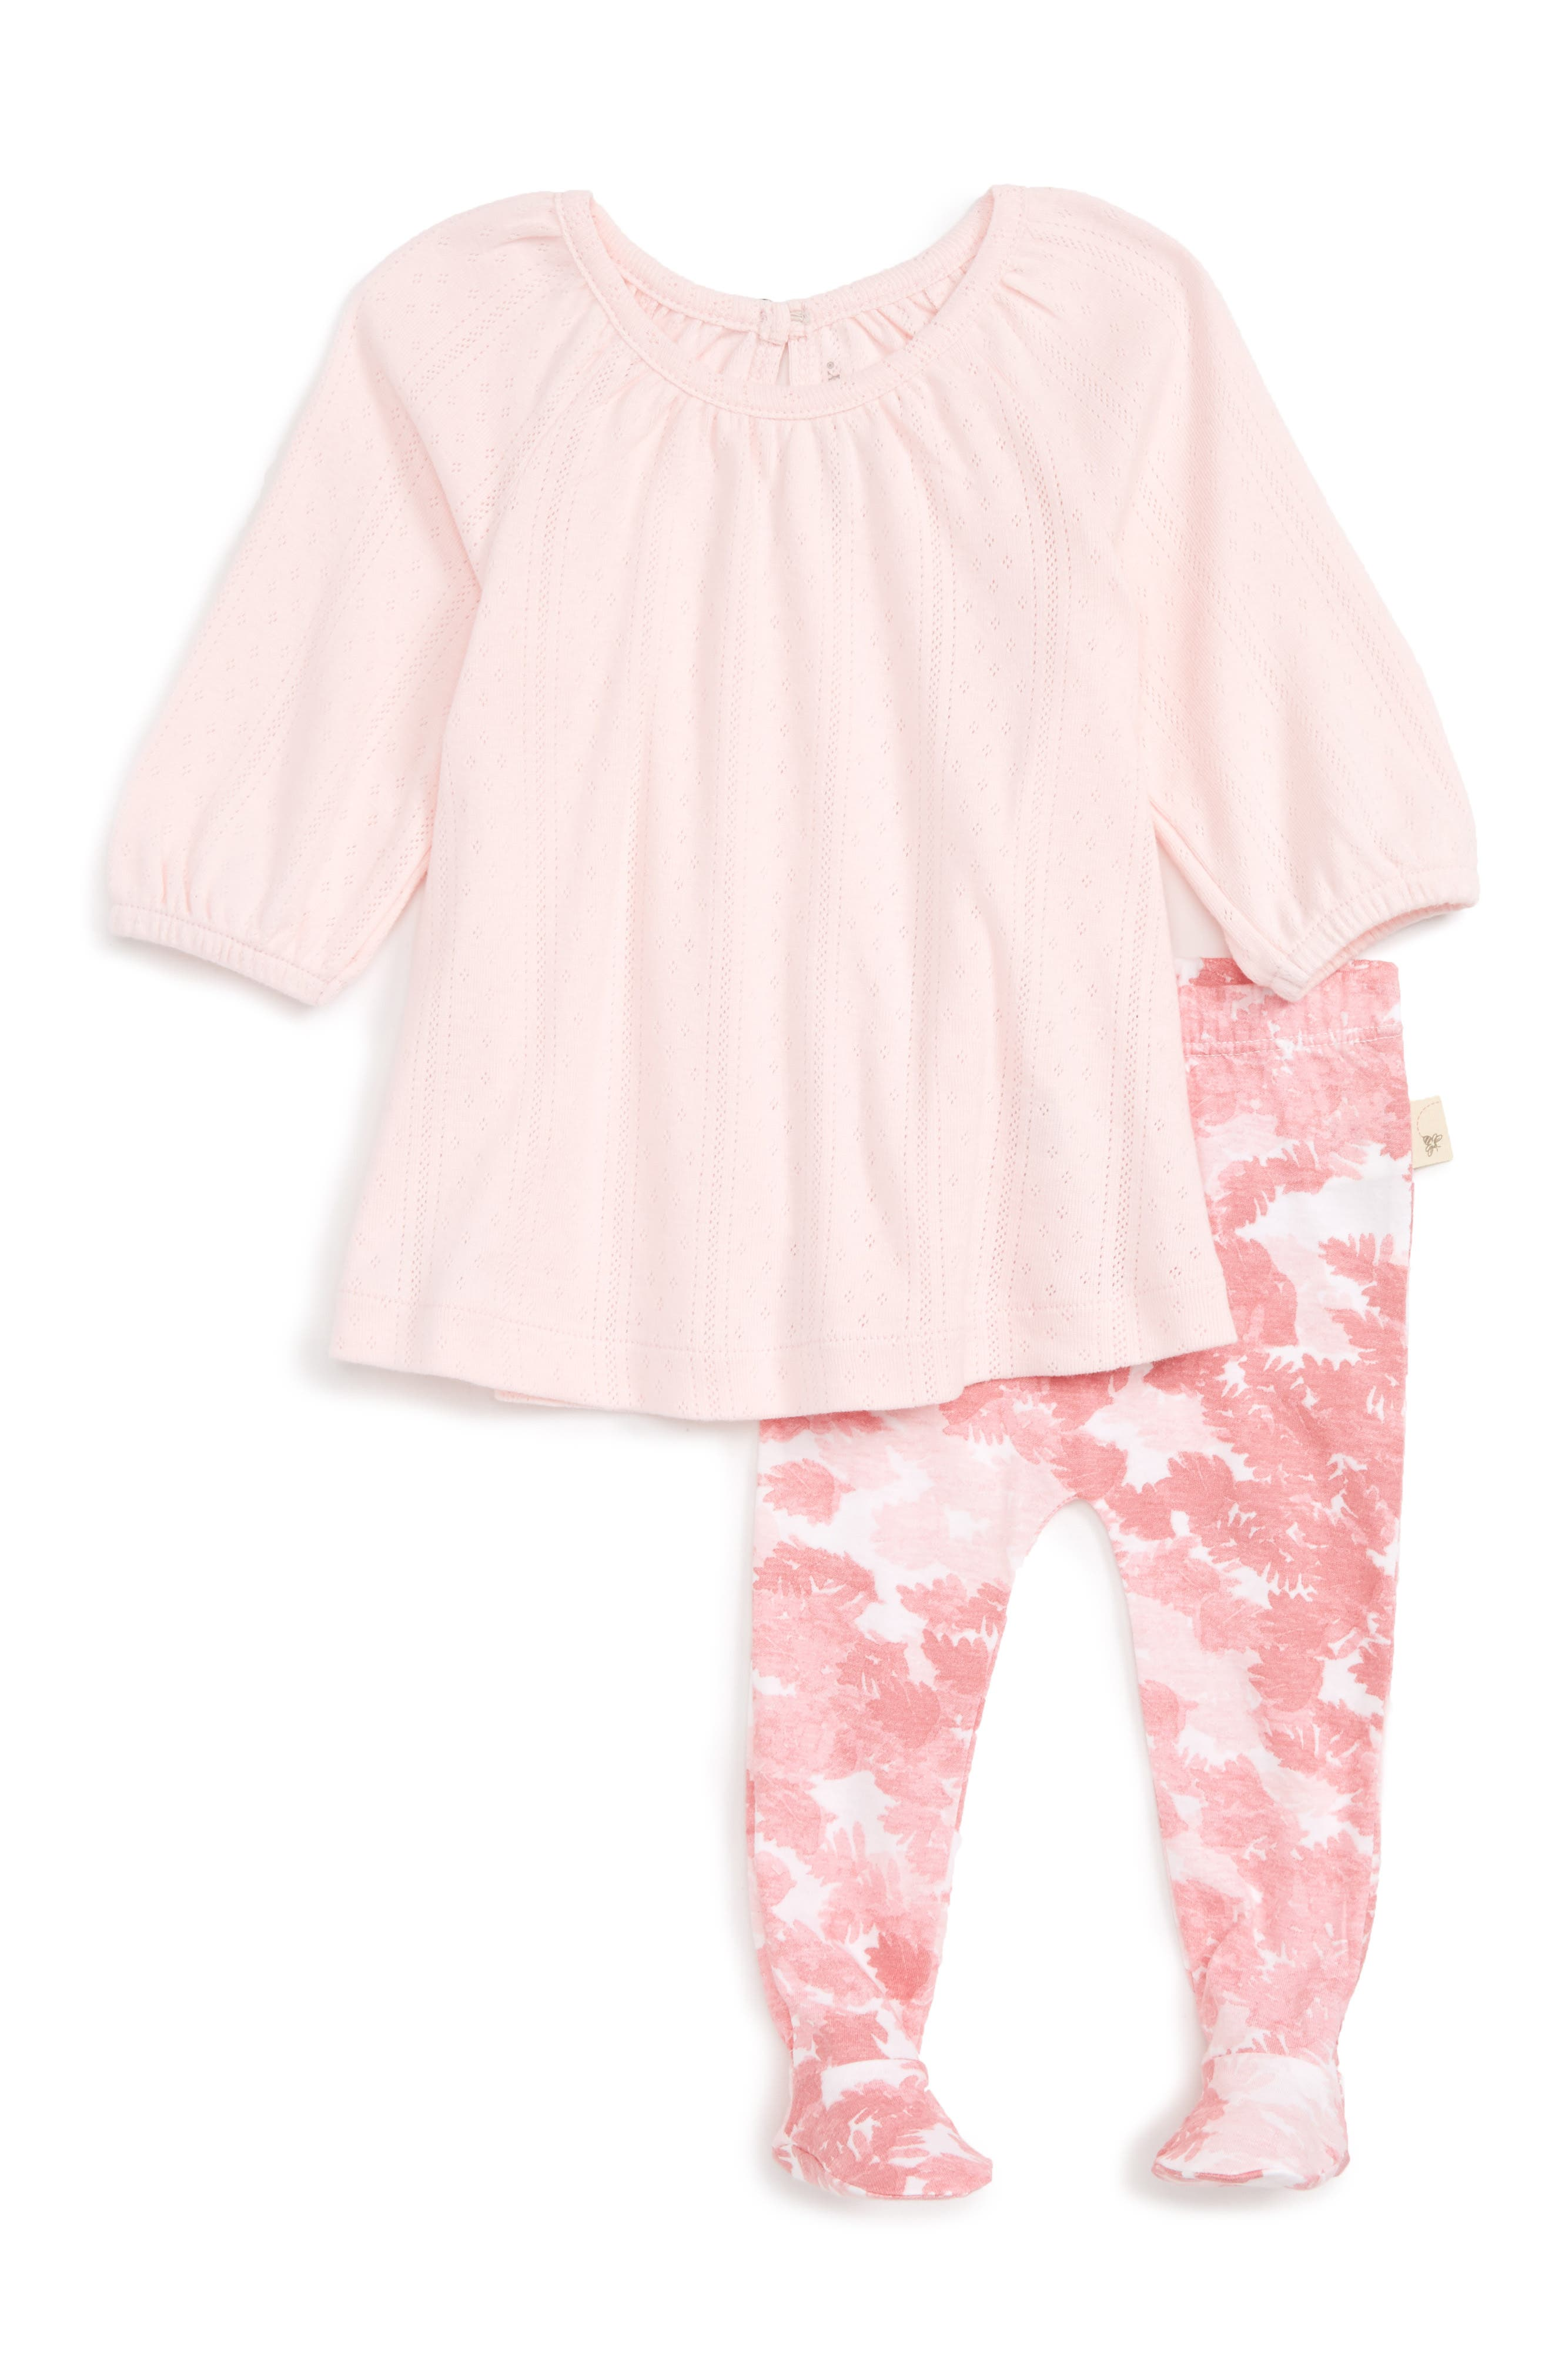 Pointelle Organic Cotton Dress & Footed Leggings Set,                             Main thumbnail 1, color,                             Blossom